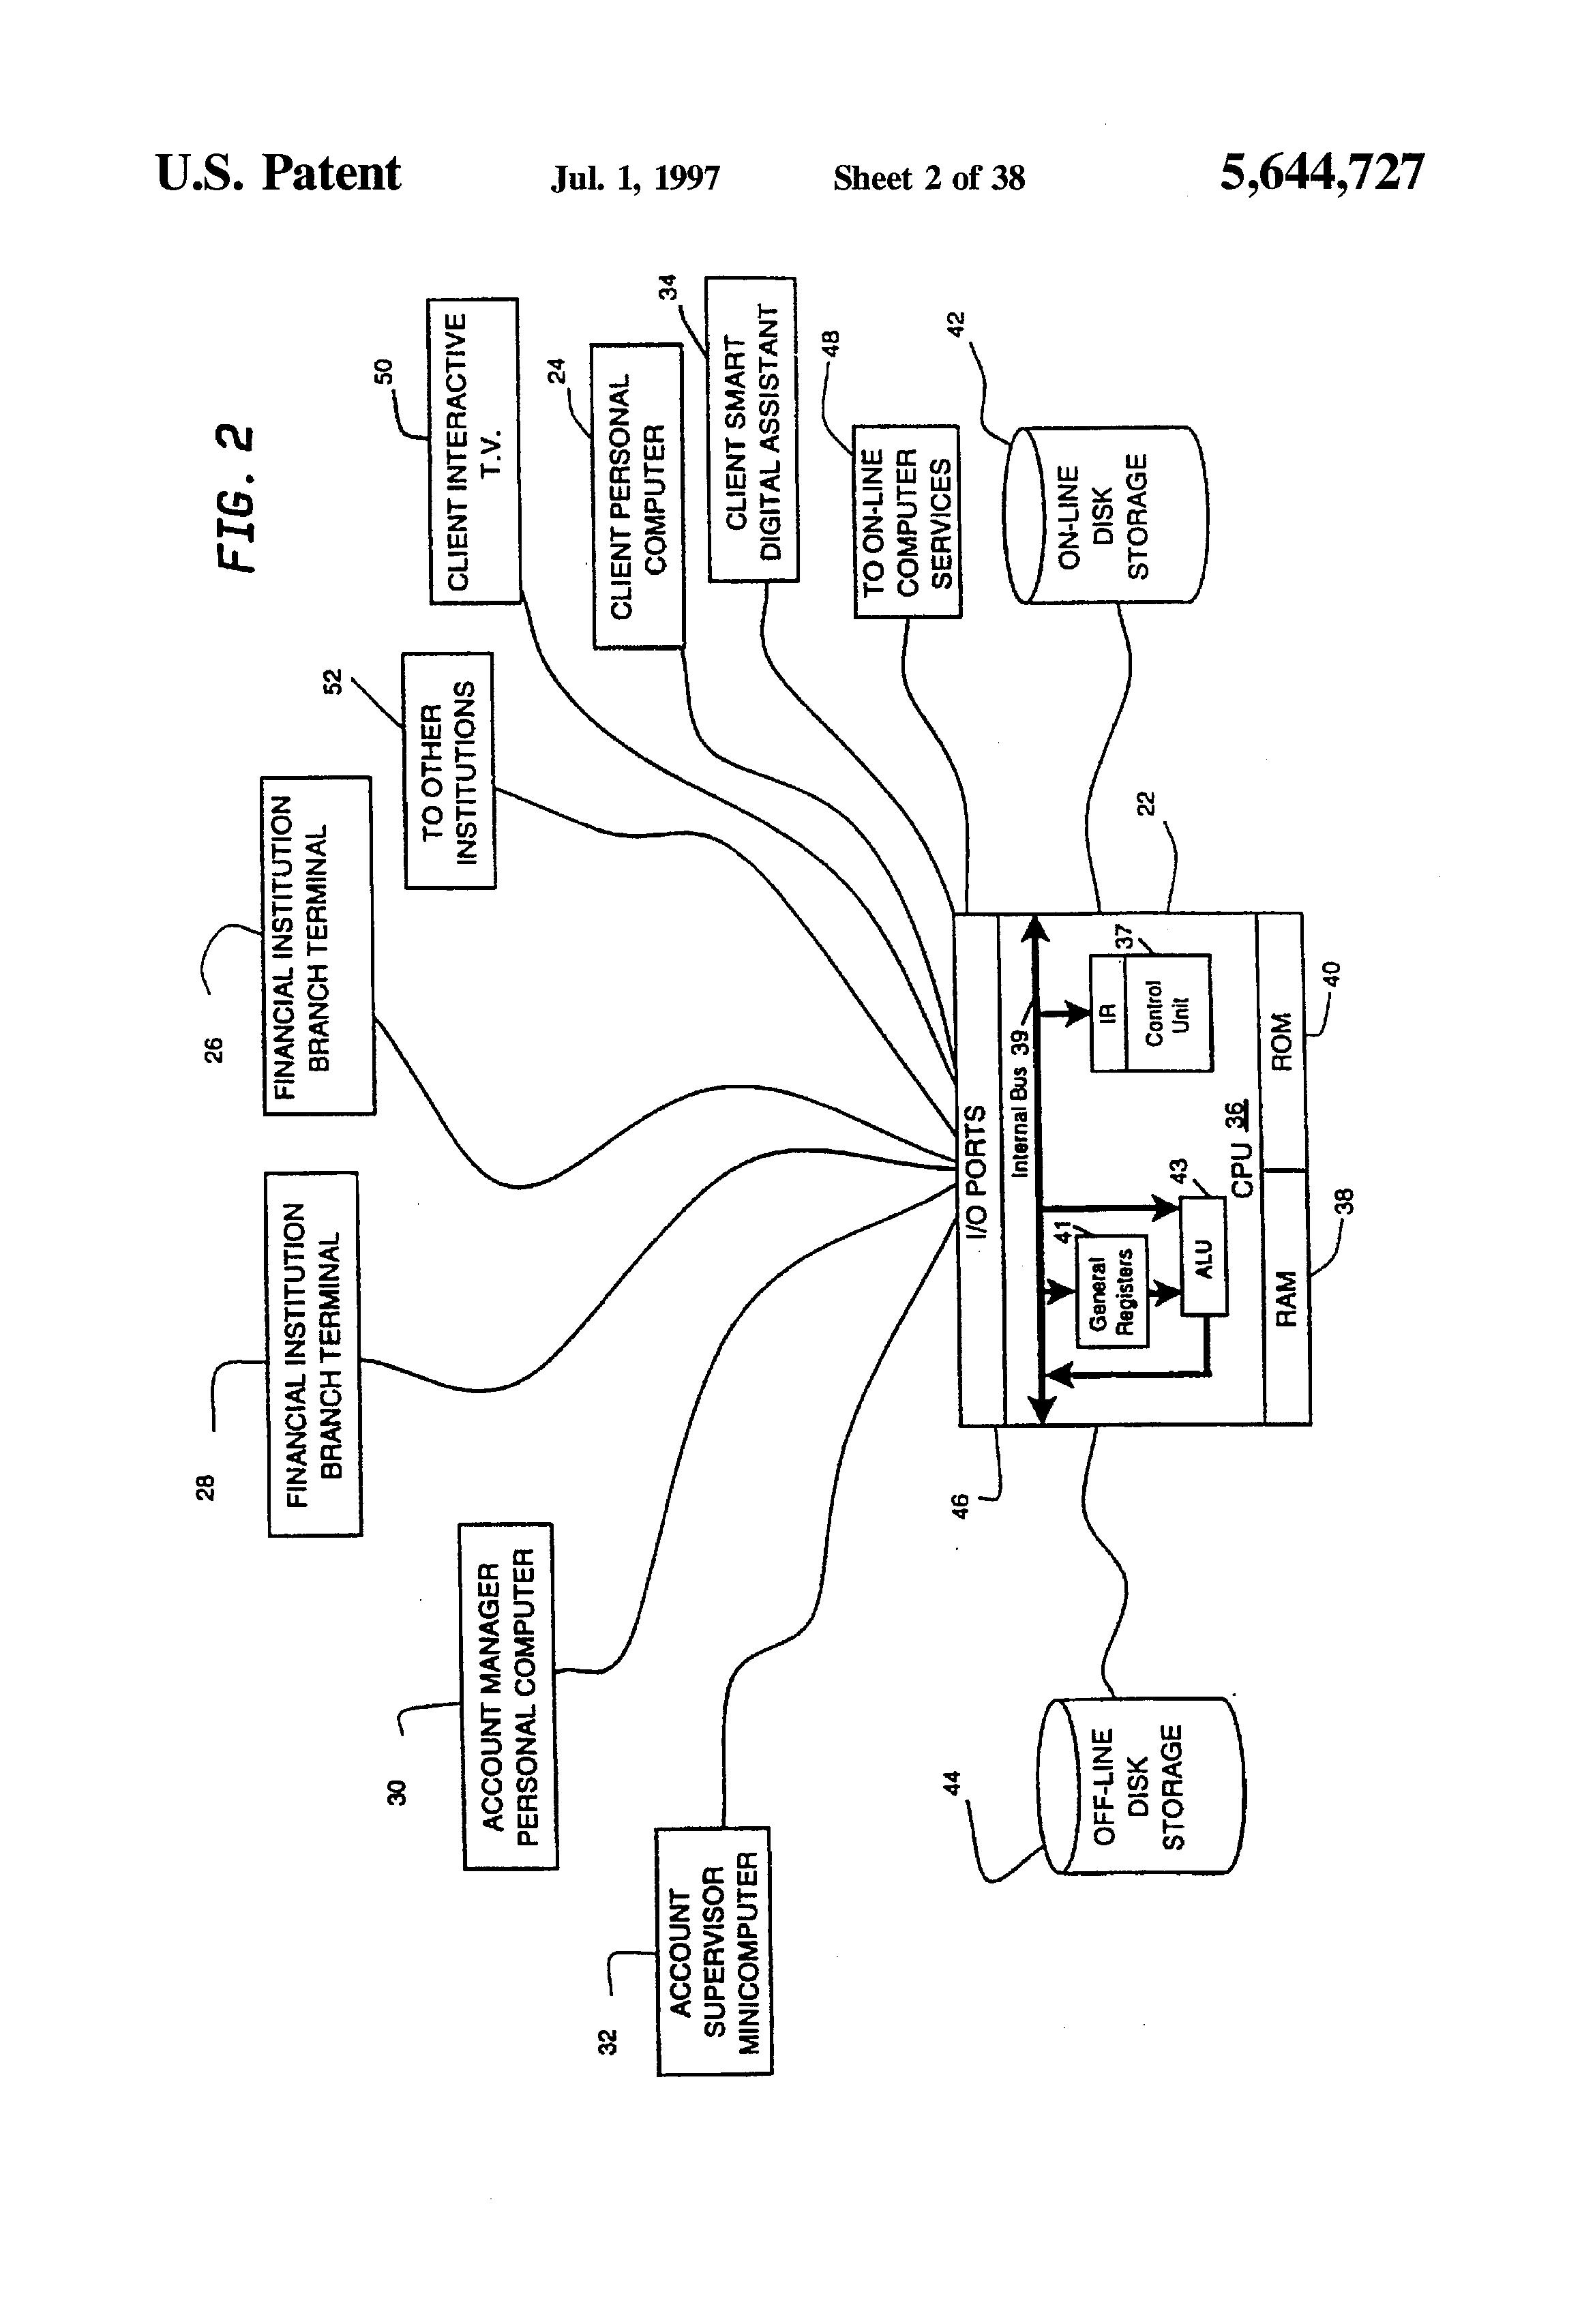 patent us5644727 system for the operation and management of one 457 Plan Withdrawal For Home Purchase 457 Plan Withdrawal For Home Purchase #8 457 plan withdrawal for home purchase